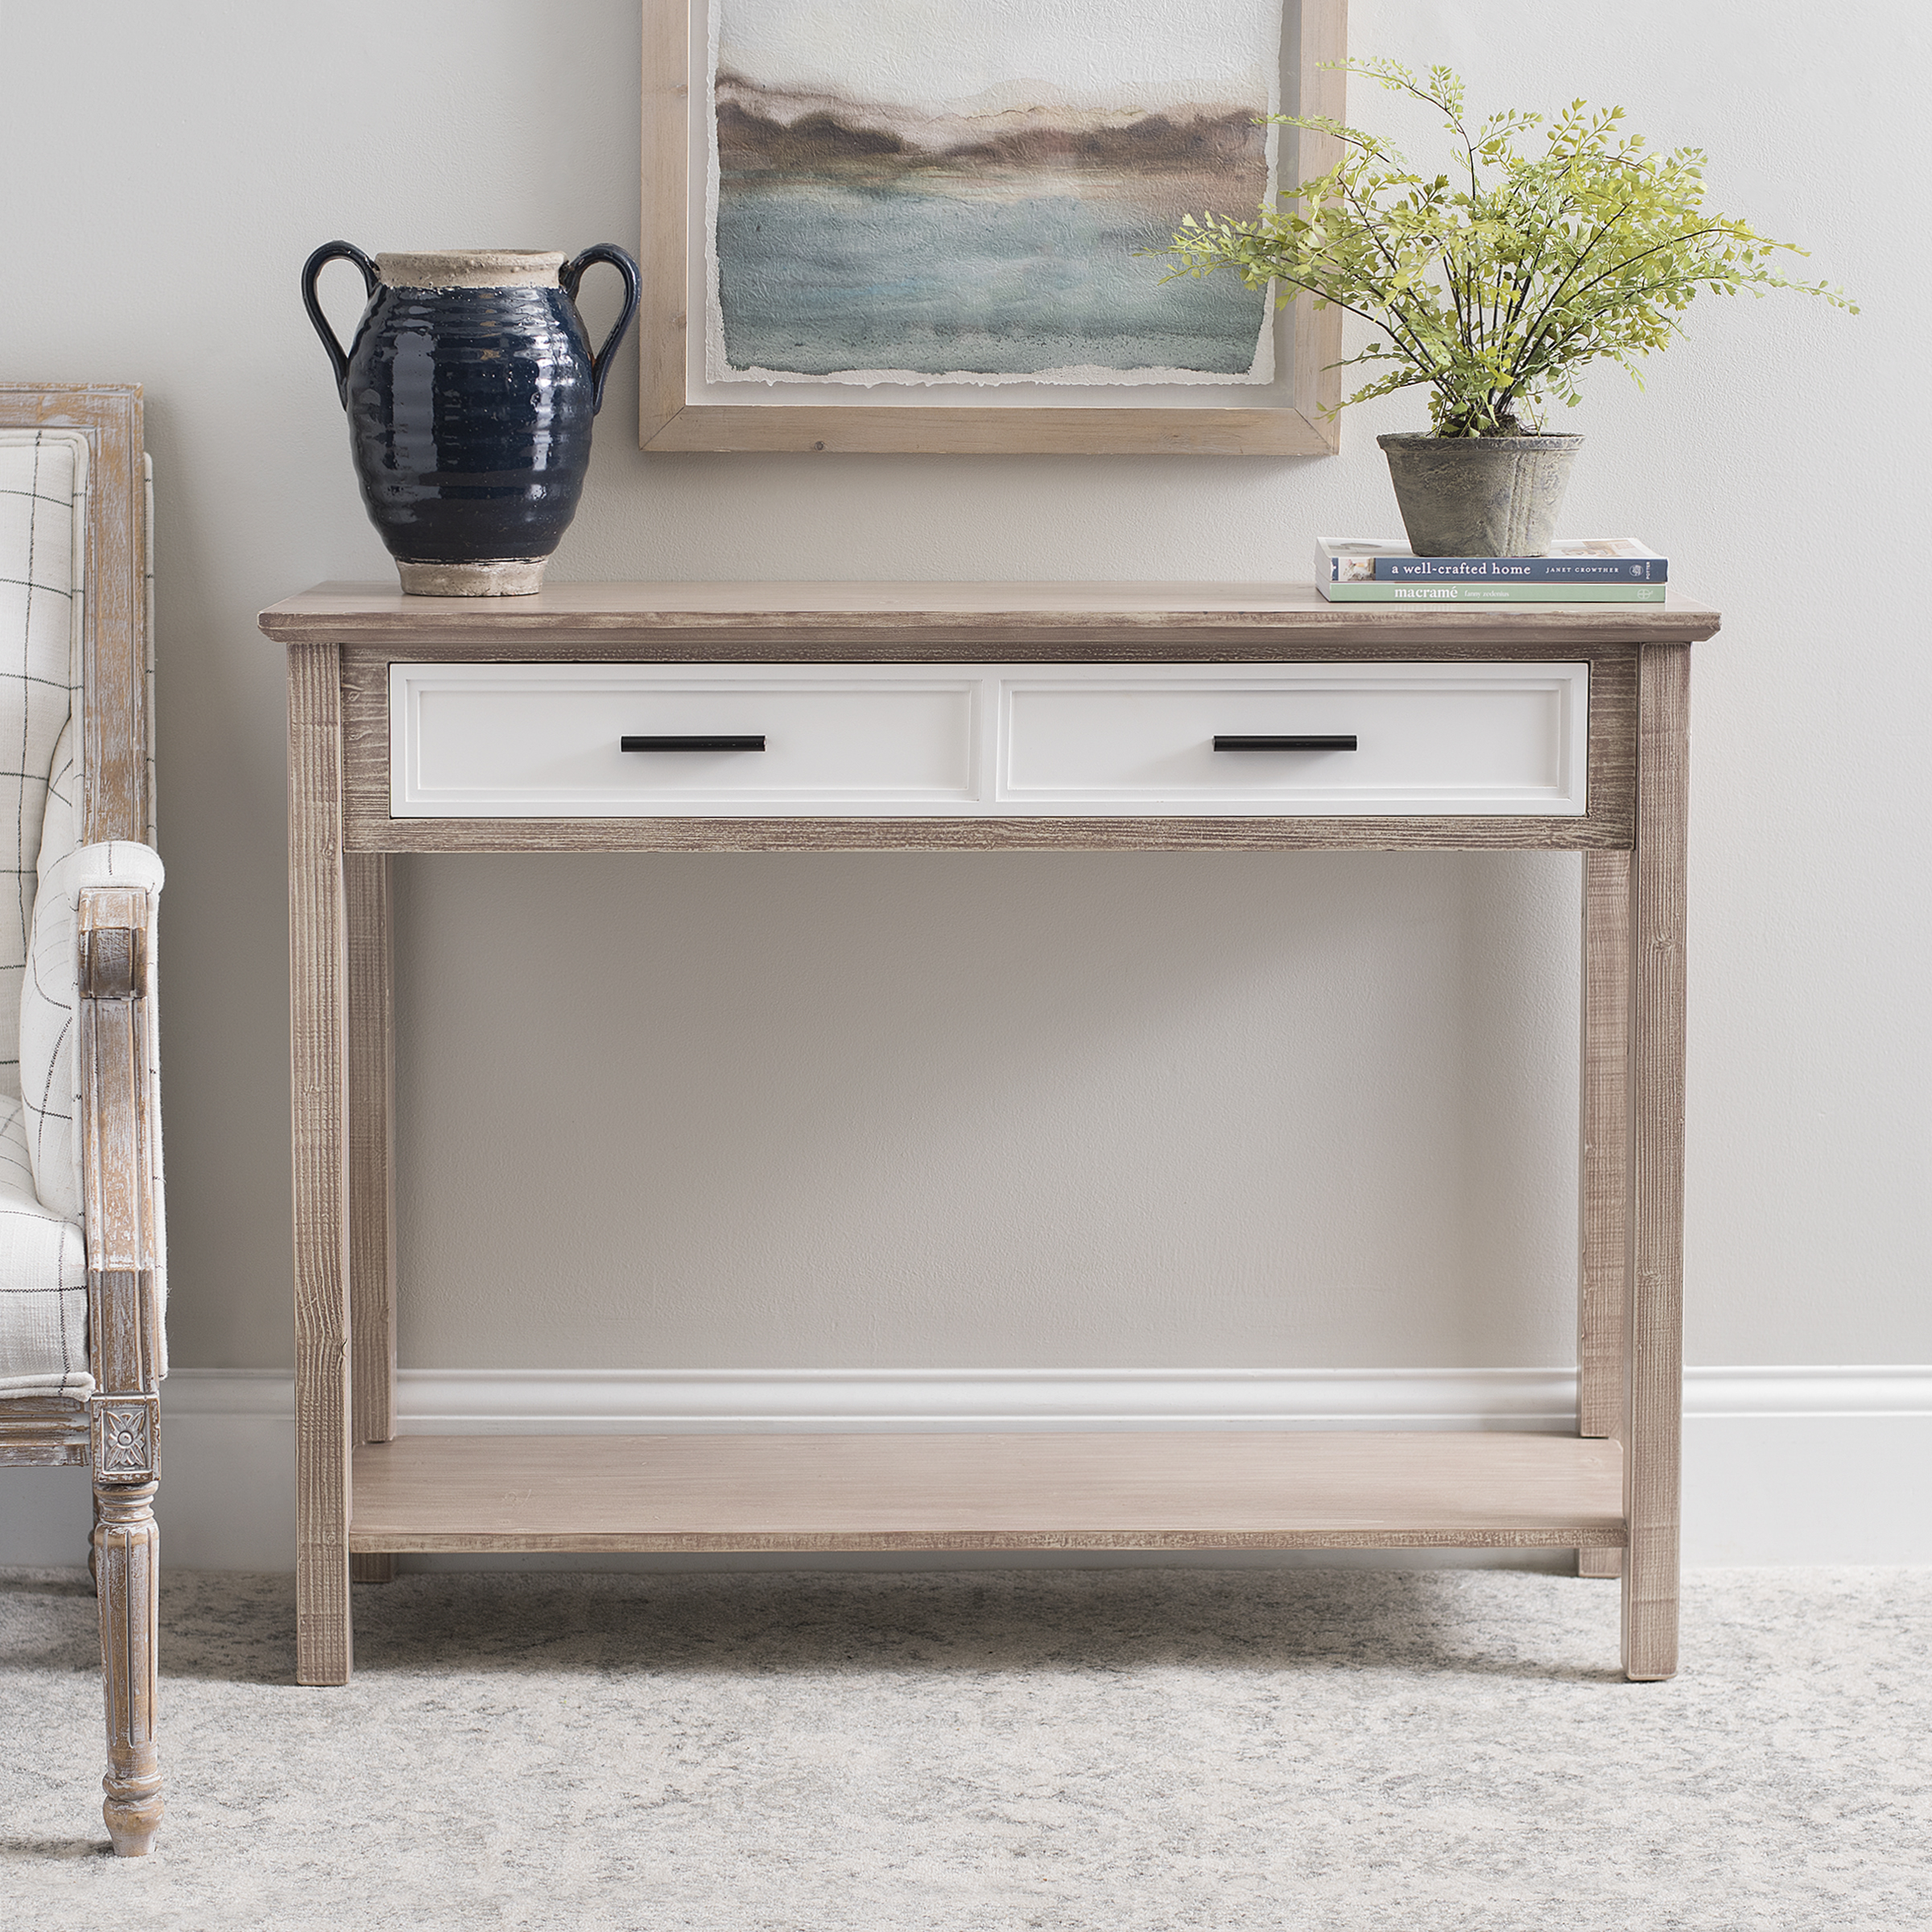 Kirkland's - Natural Console Table